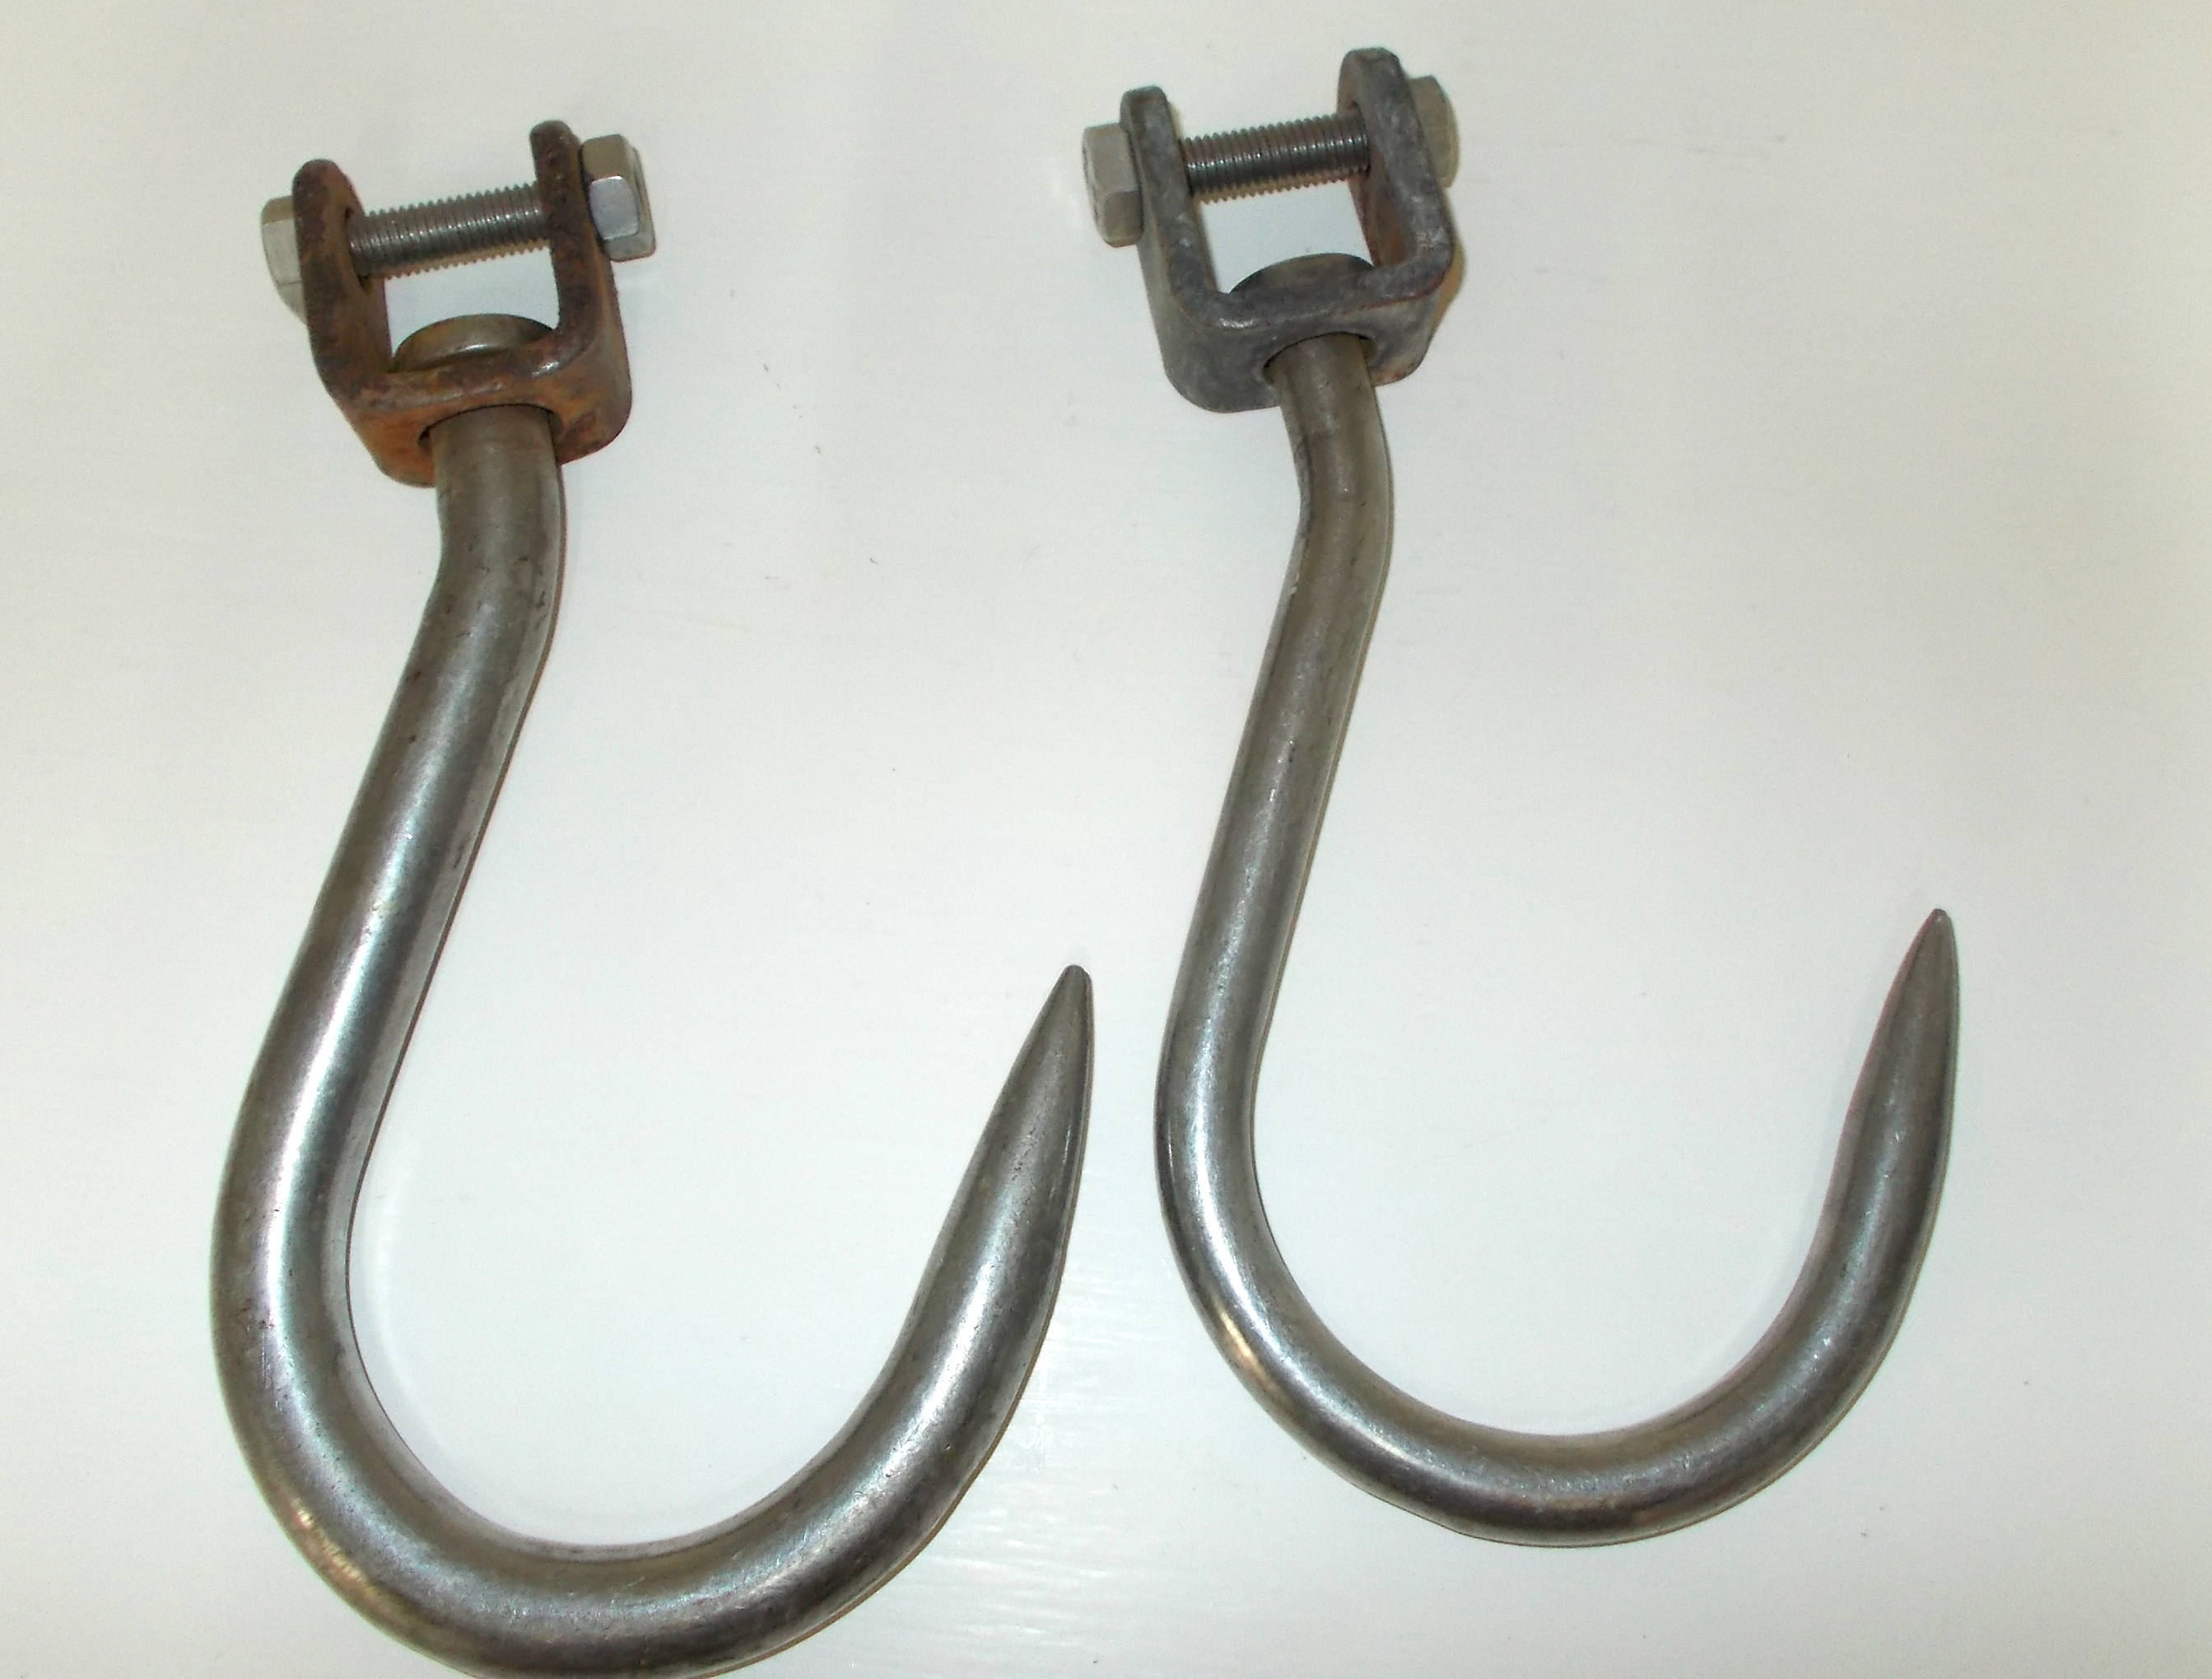 2 Extra Large Butchers Hooks. Vintage French Stainless Steel Hooks ...